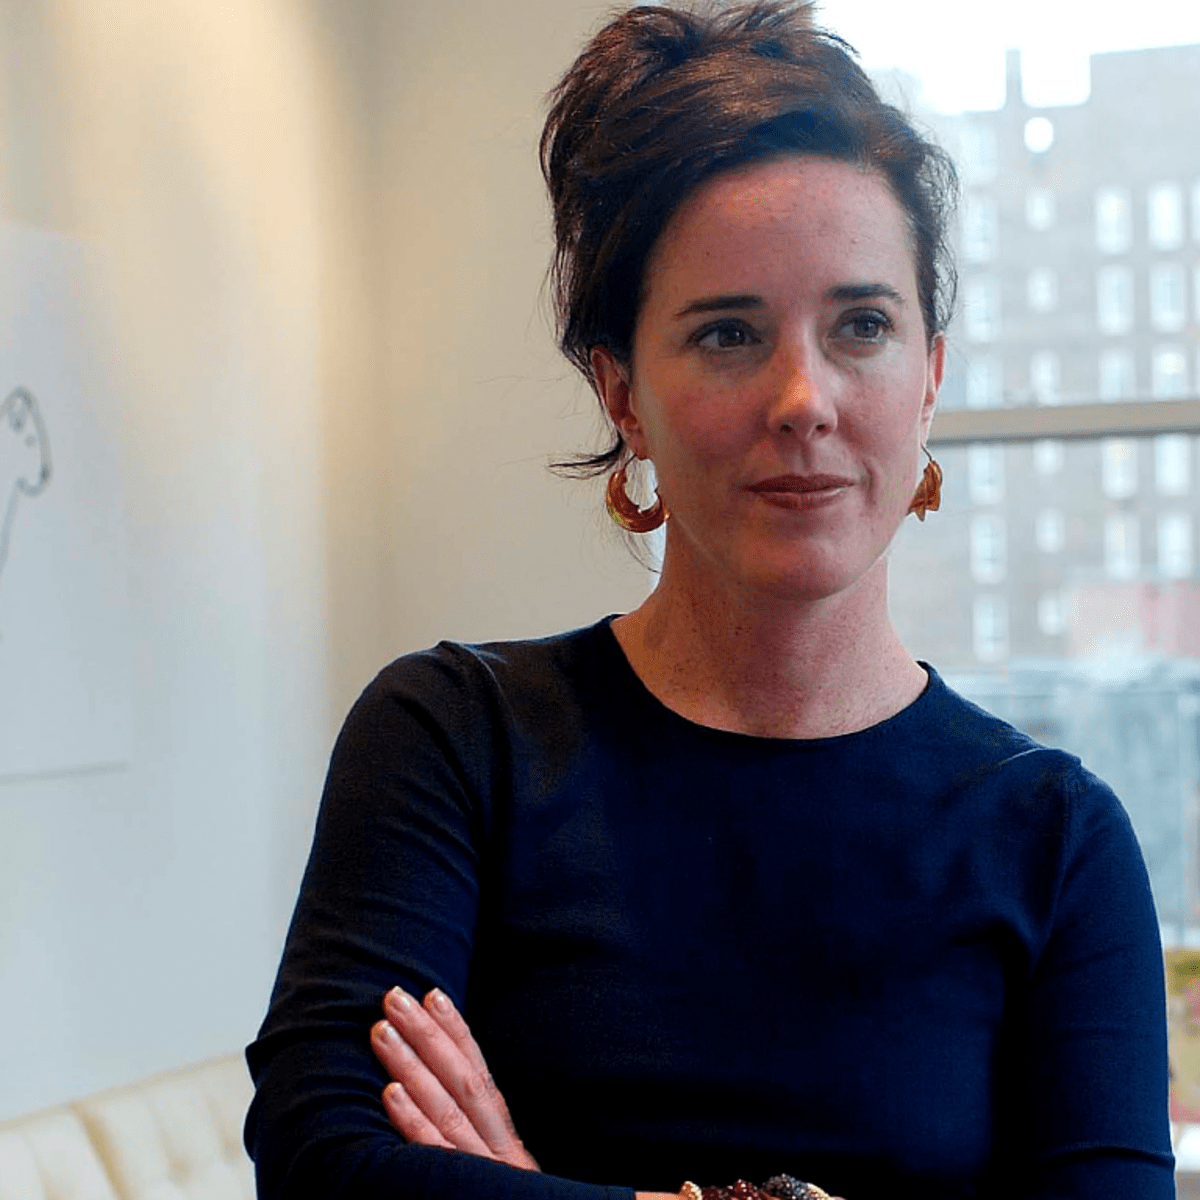 Kate Spade Net Worth 5 Facts About Her Life And Brand Thestreet